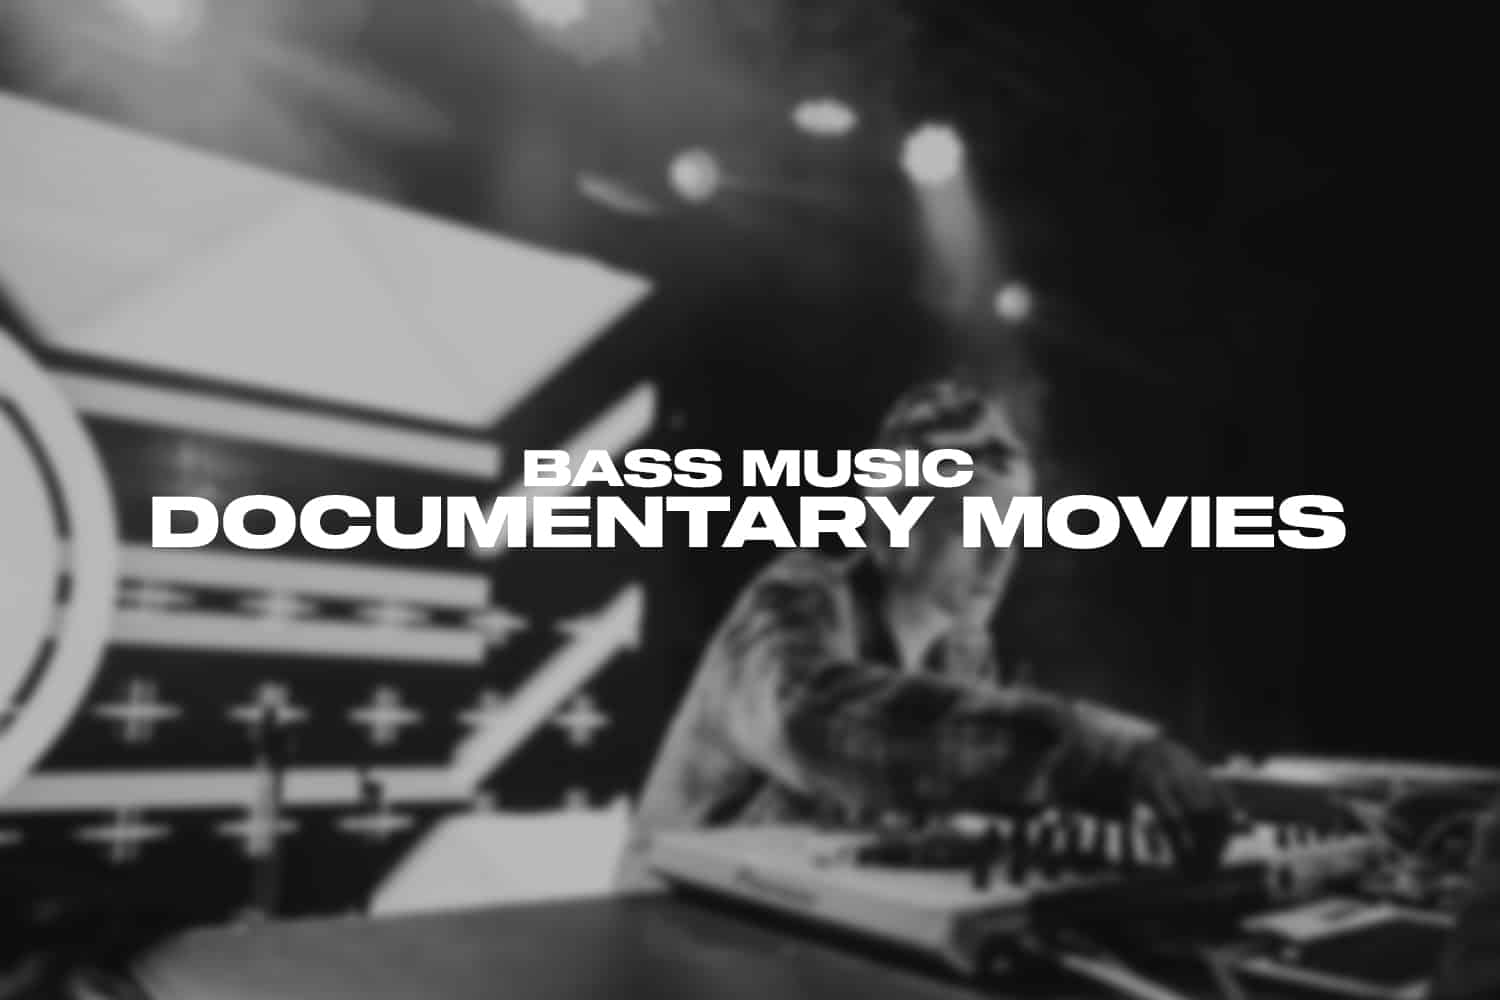 Bass music documentary movies to watch